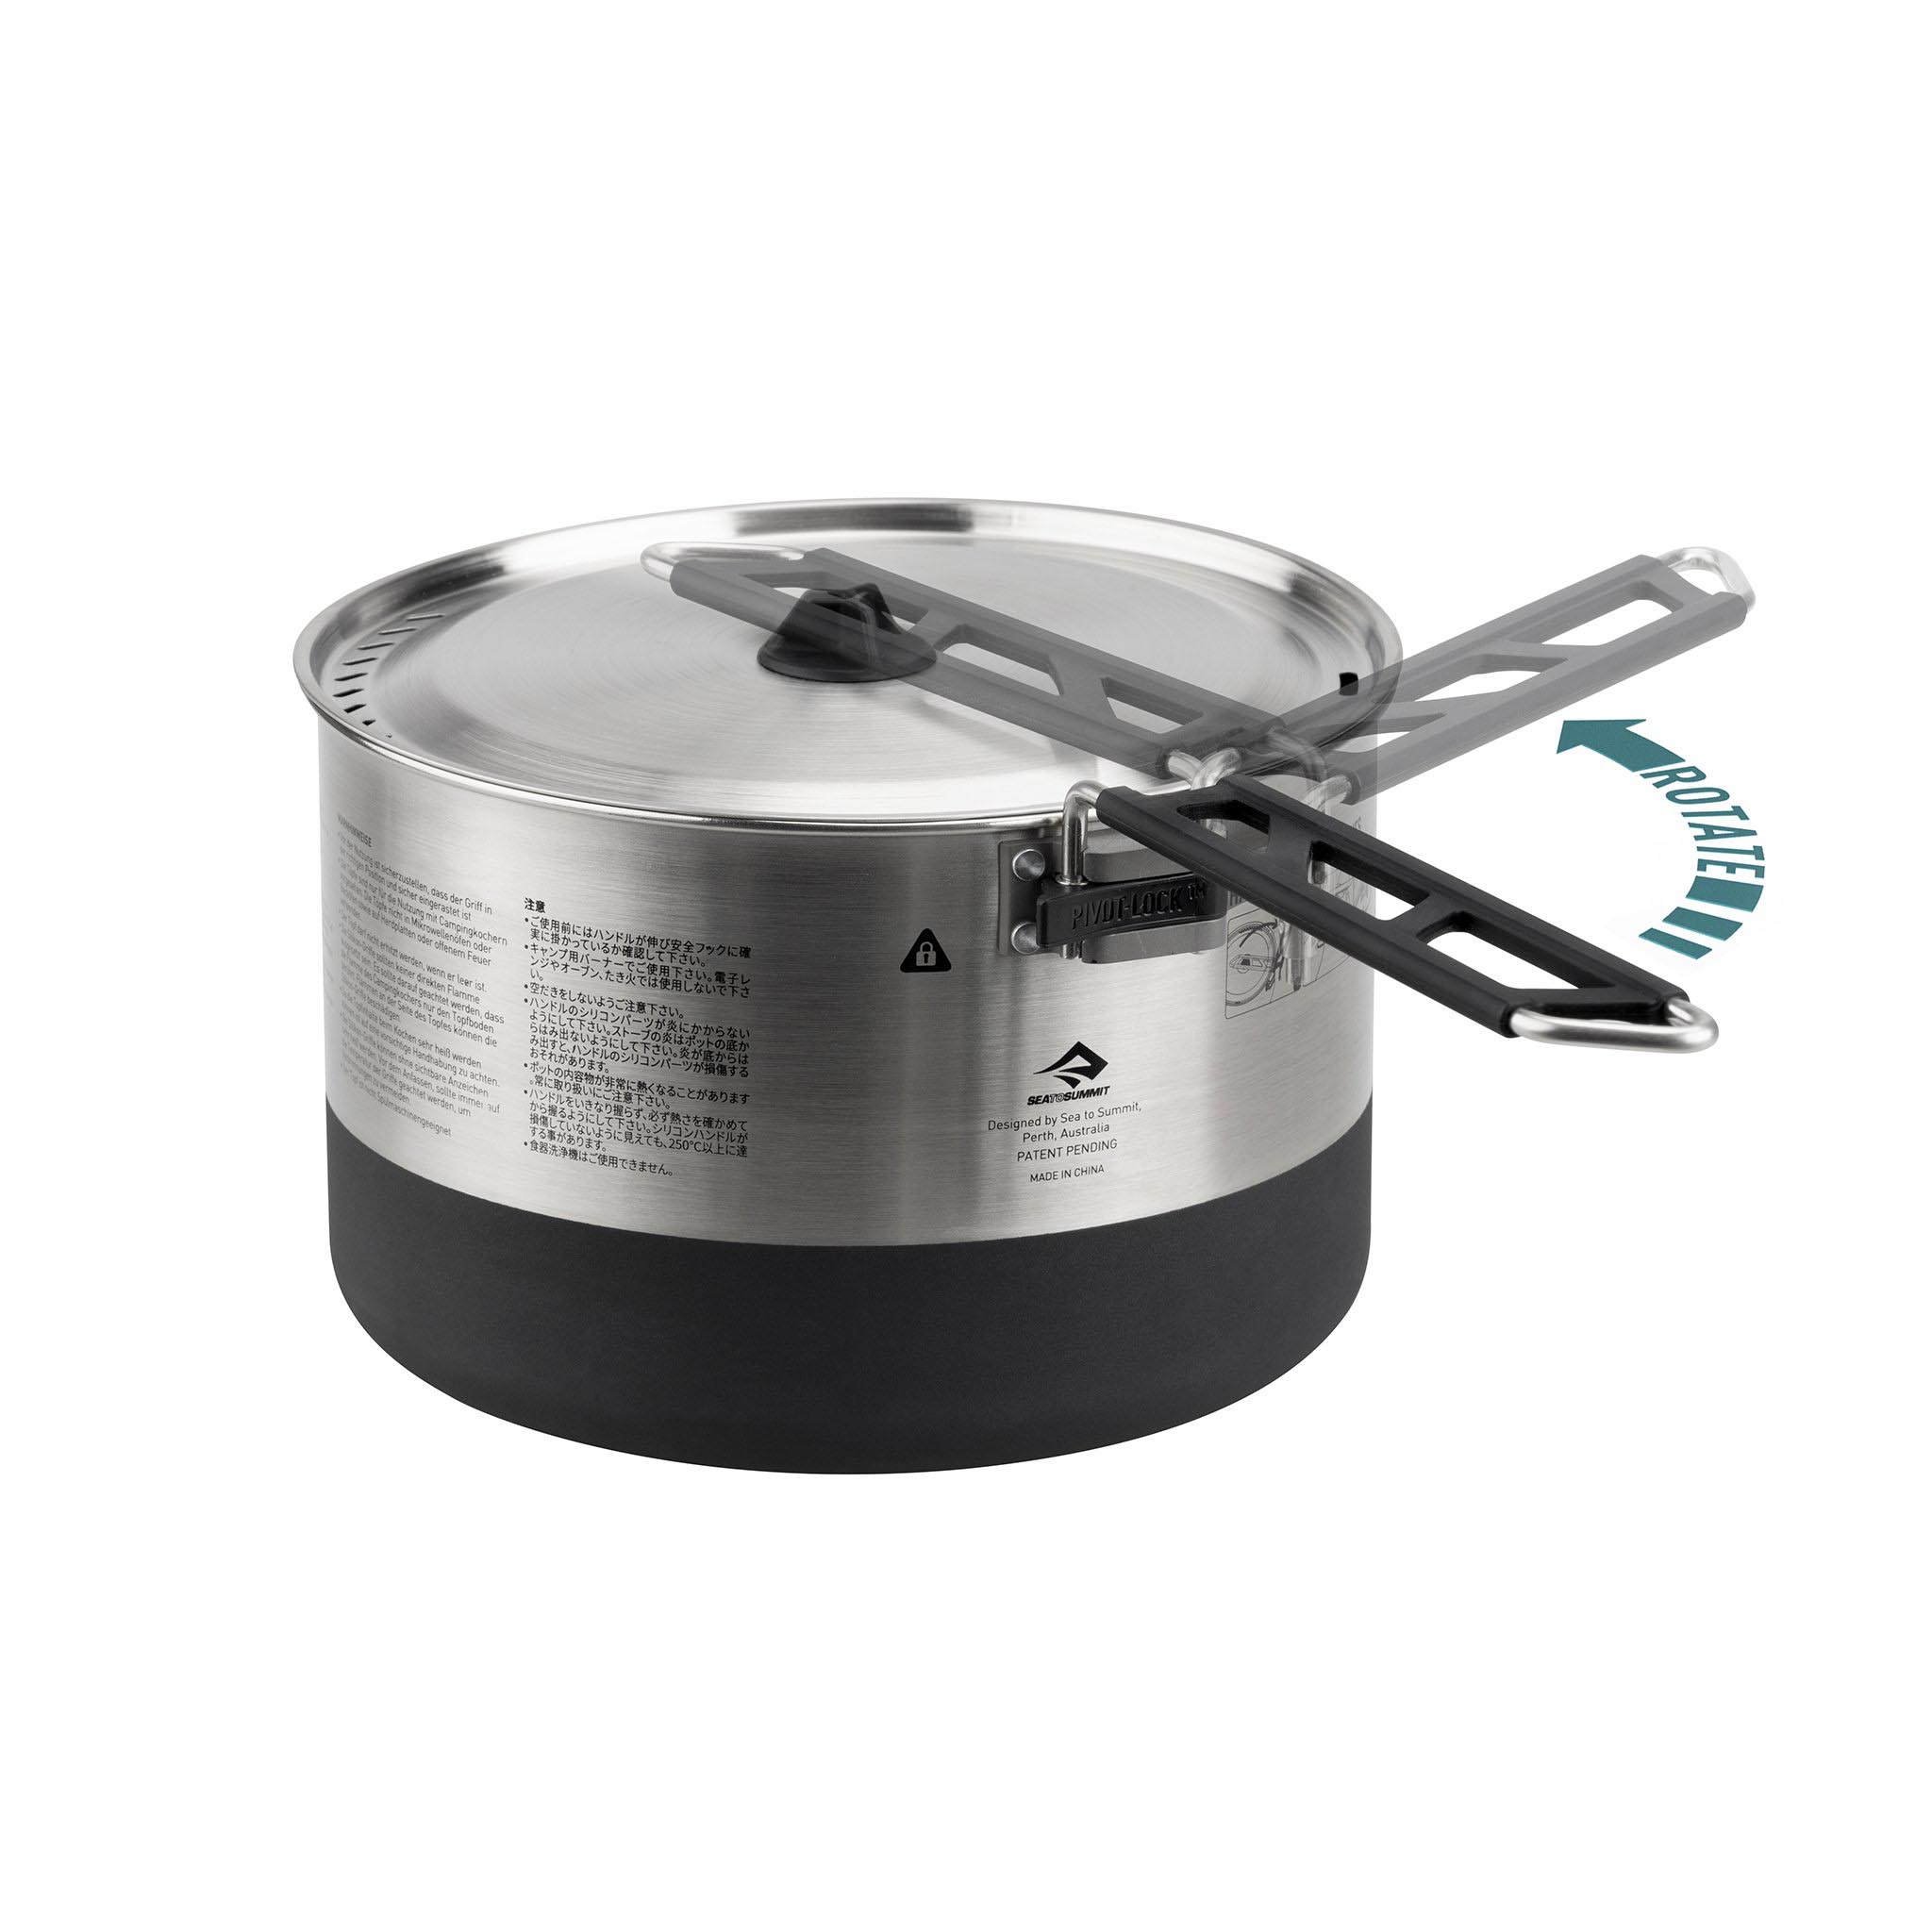 Sea to Summit Sigma Stainless Steel Pot